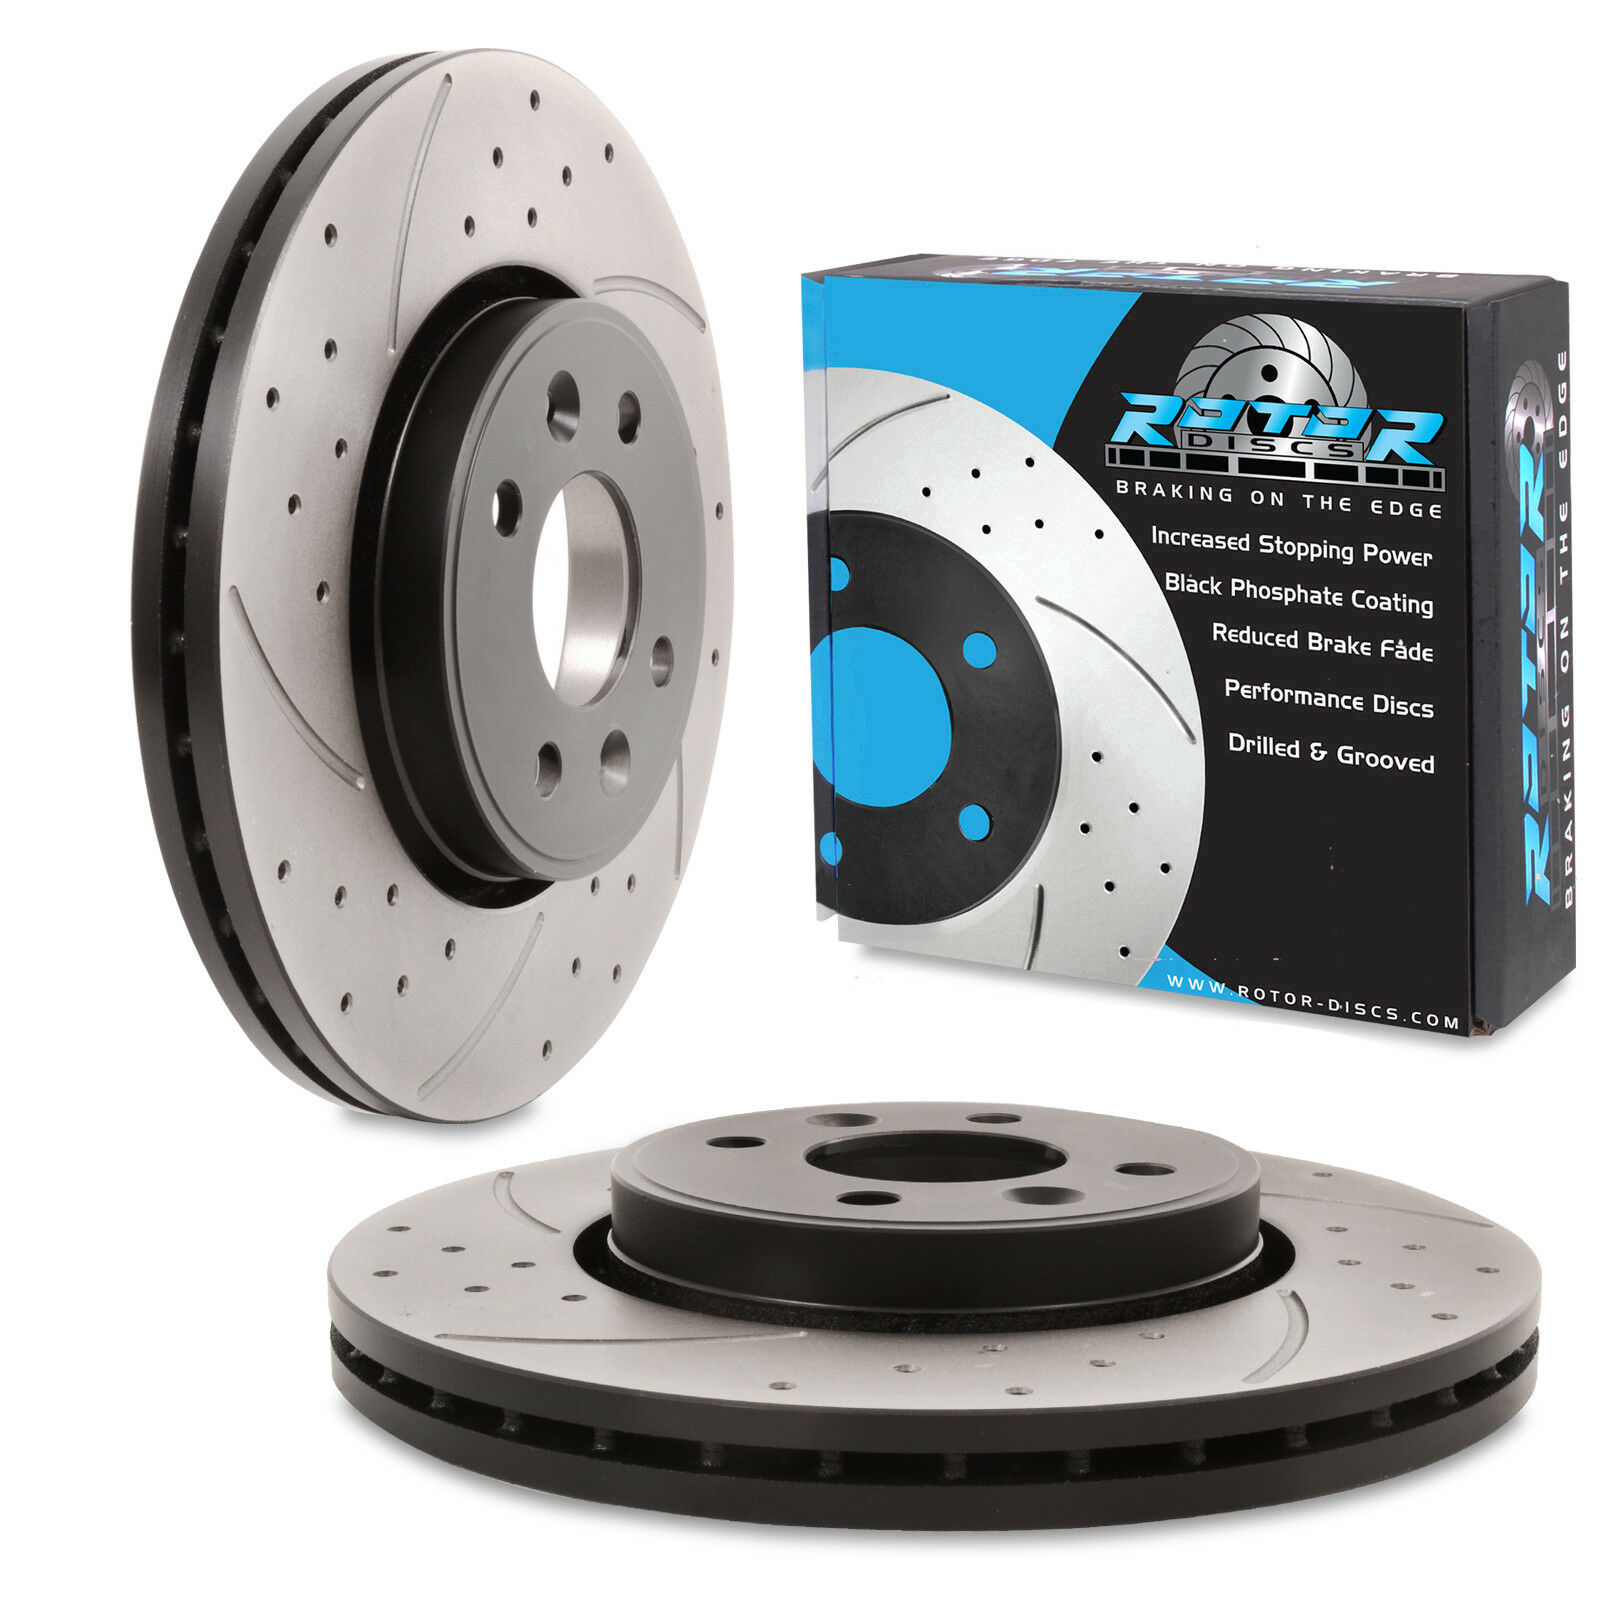 Renault Clio 1.5 dci Drilled /& Grooved Discs pads Front 05